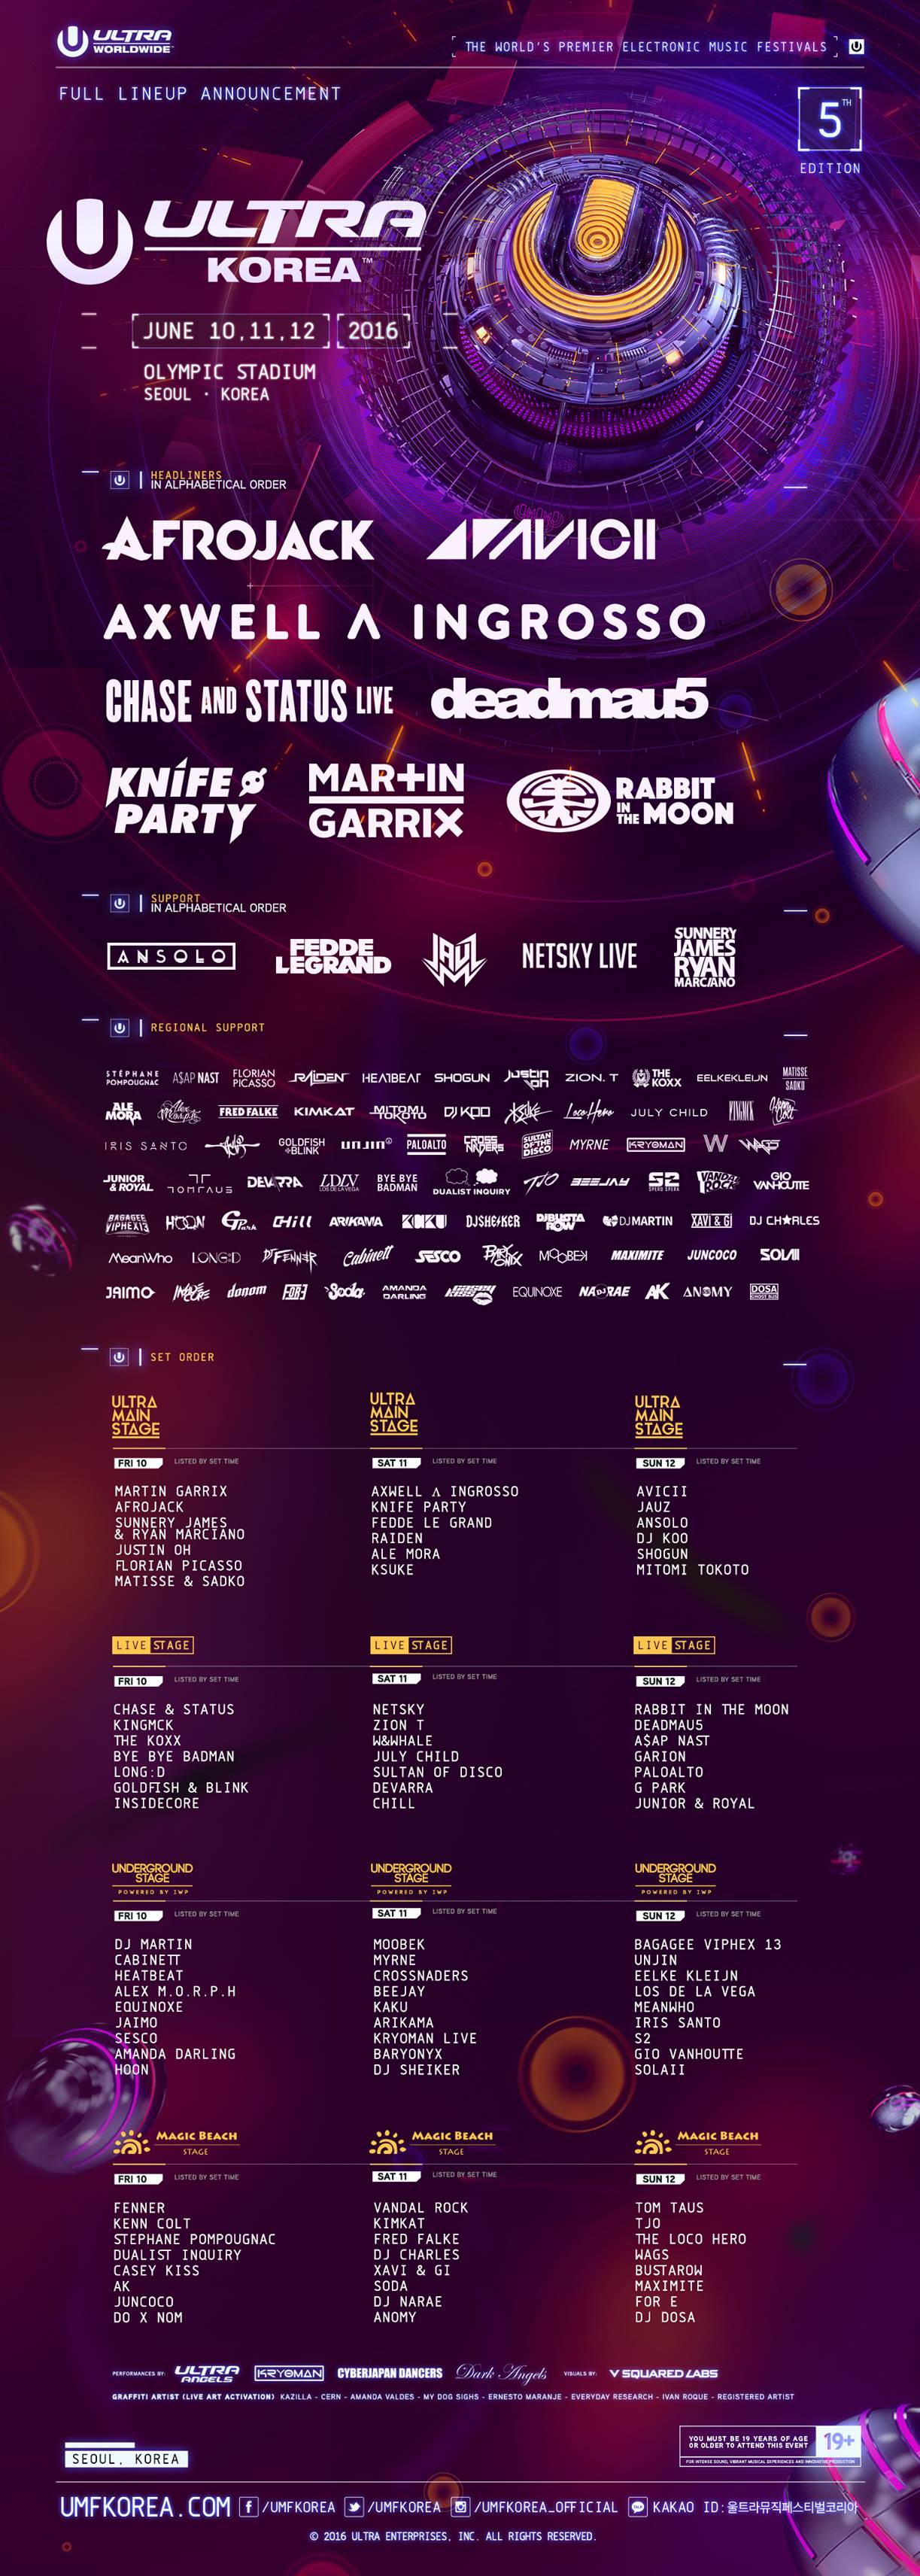 Ultra Korea 2016 full line up